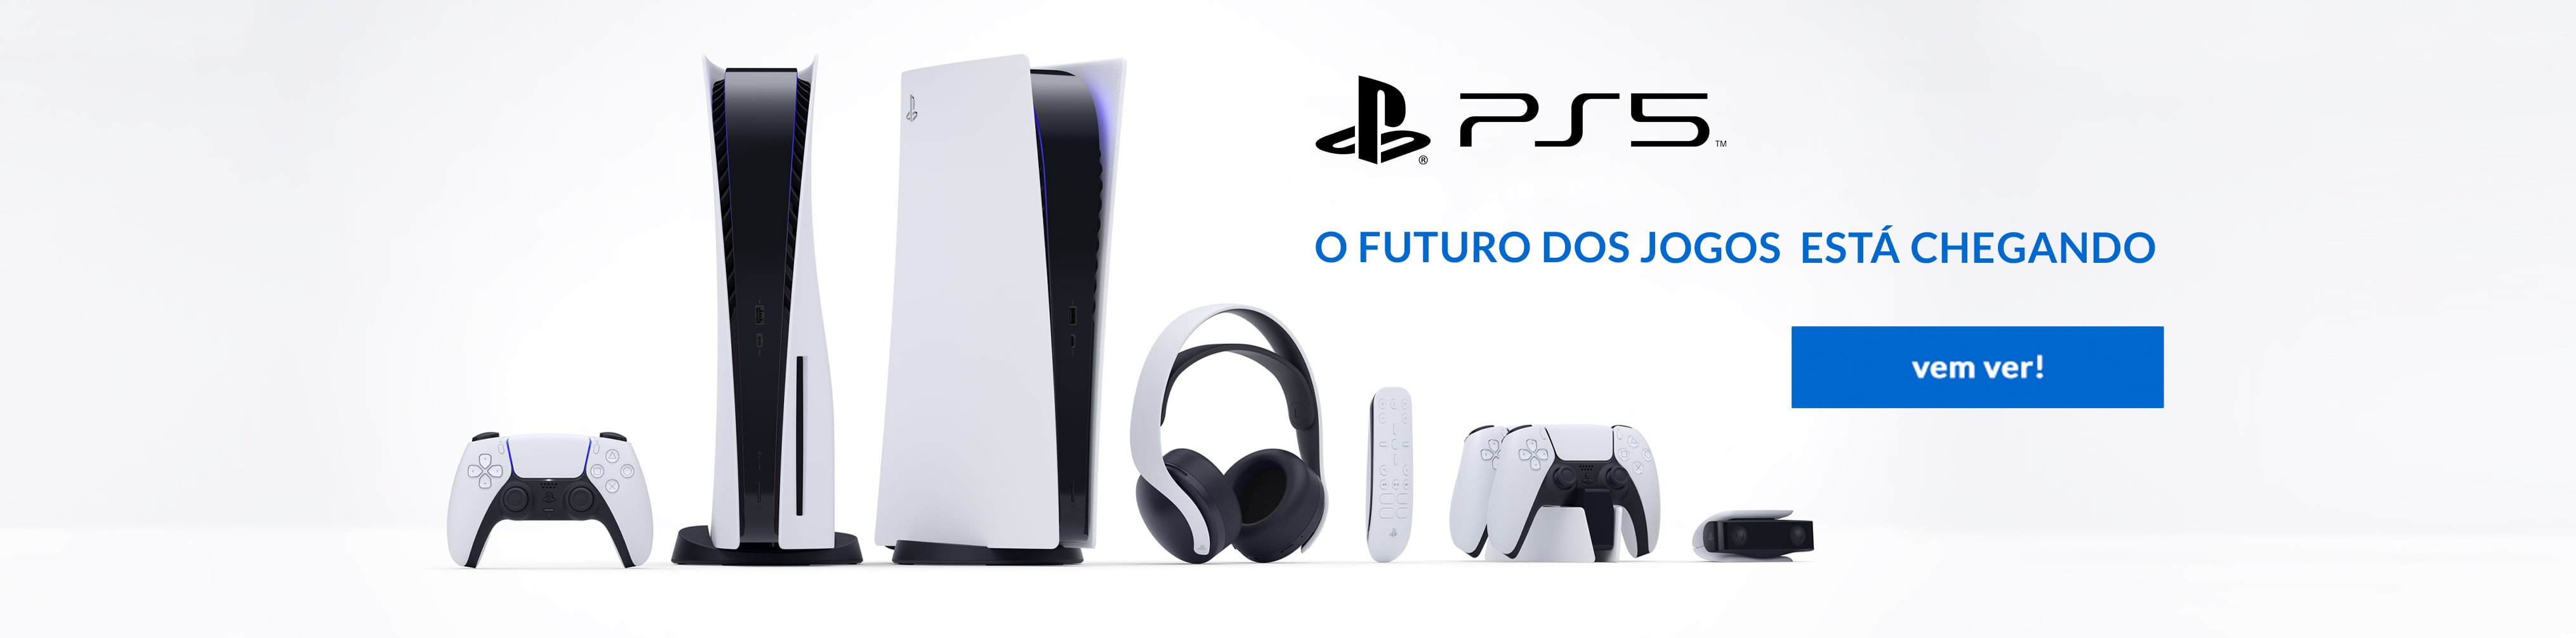 /playstation5-p